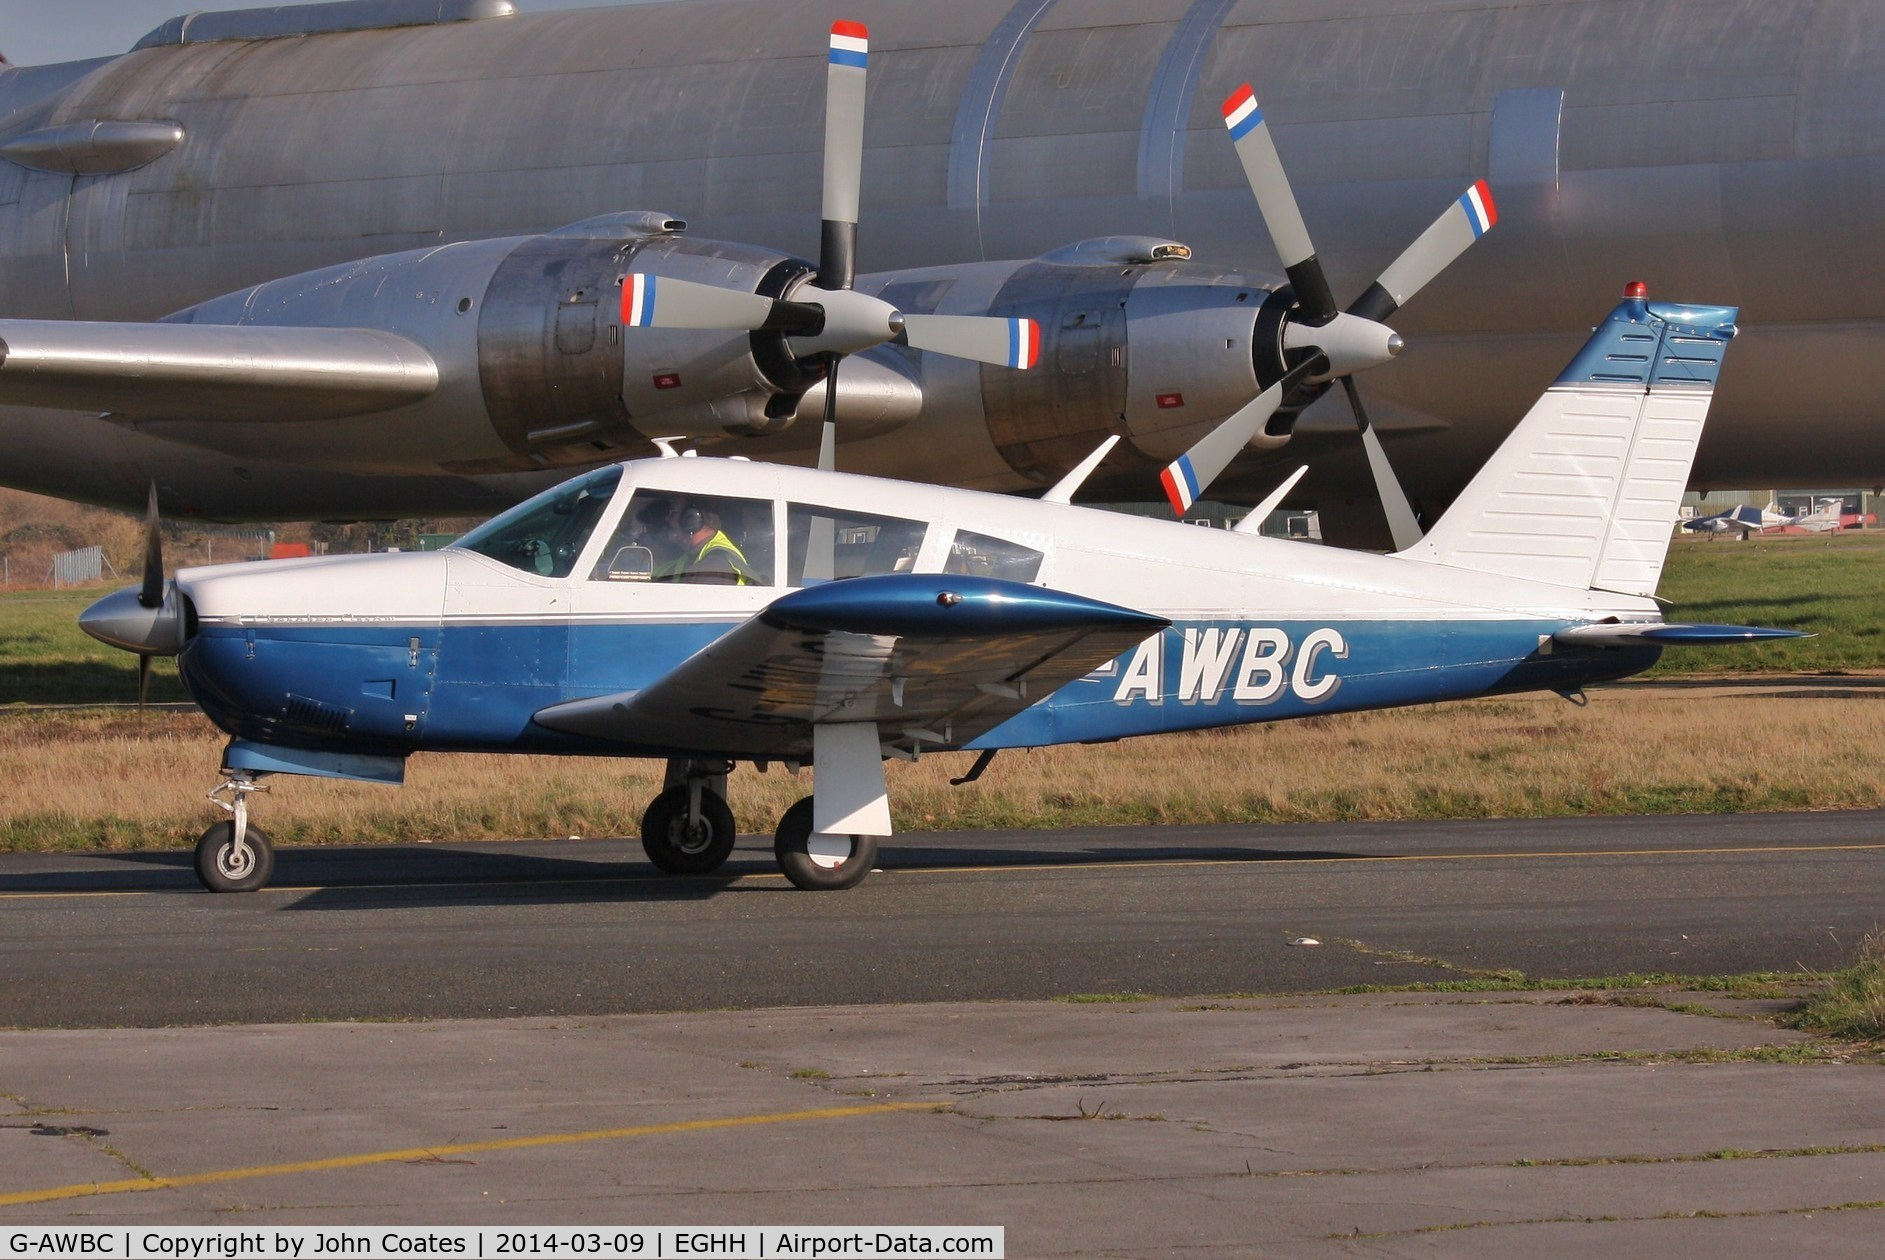 G-AWBC, 1968 Piper PA-28R-180 Cherokee Arrow C/N 28R-30572, Taxiing past the CL44